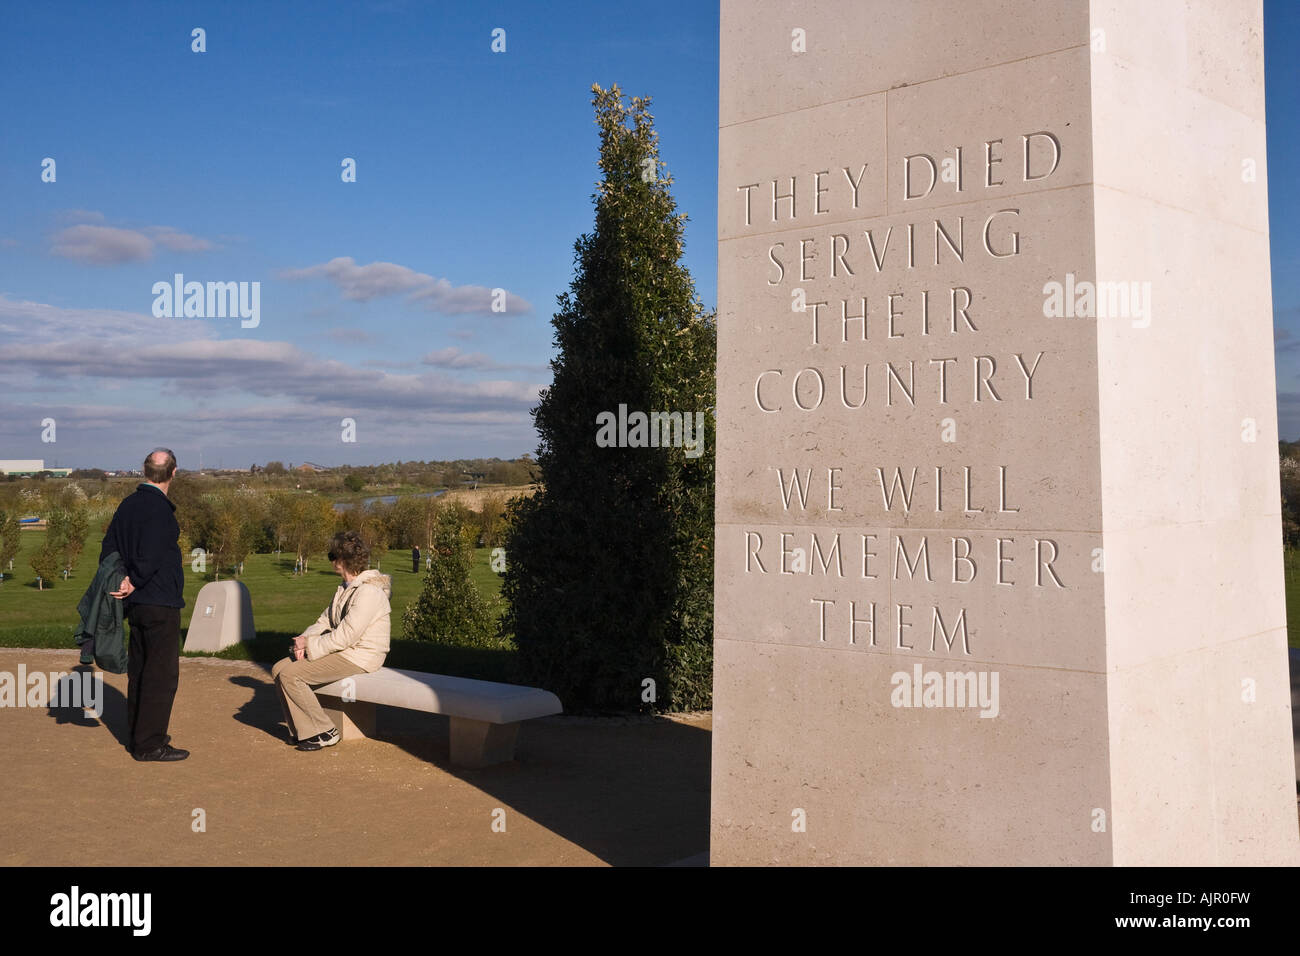 Armed Forces Memorial, National Memorial Arboretum, Alrewas, Staffordshire, England Stockbild